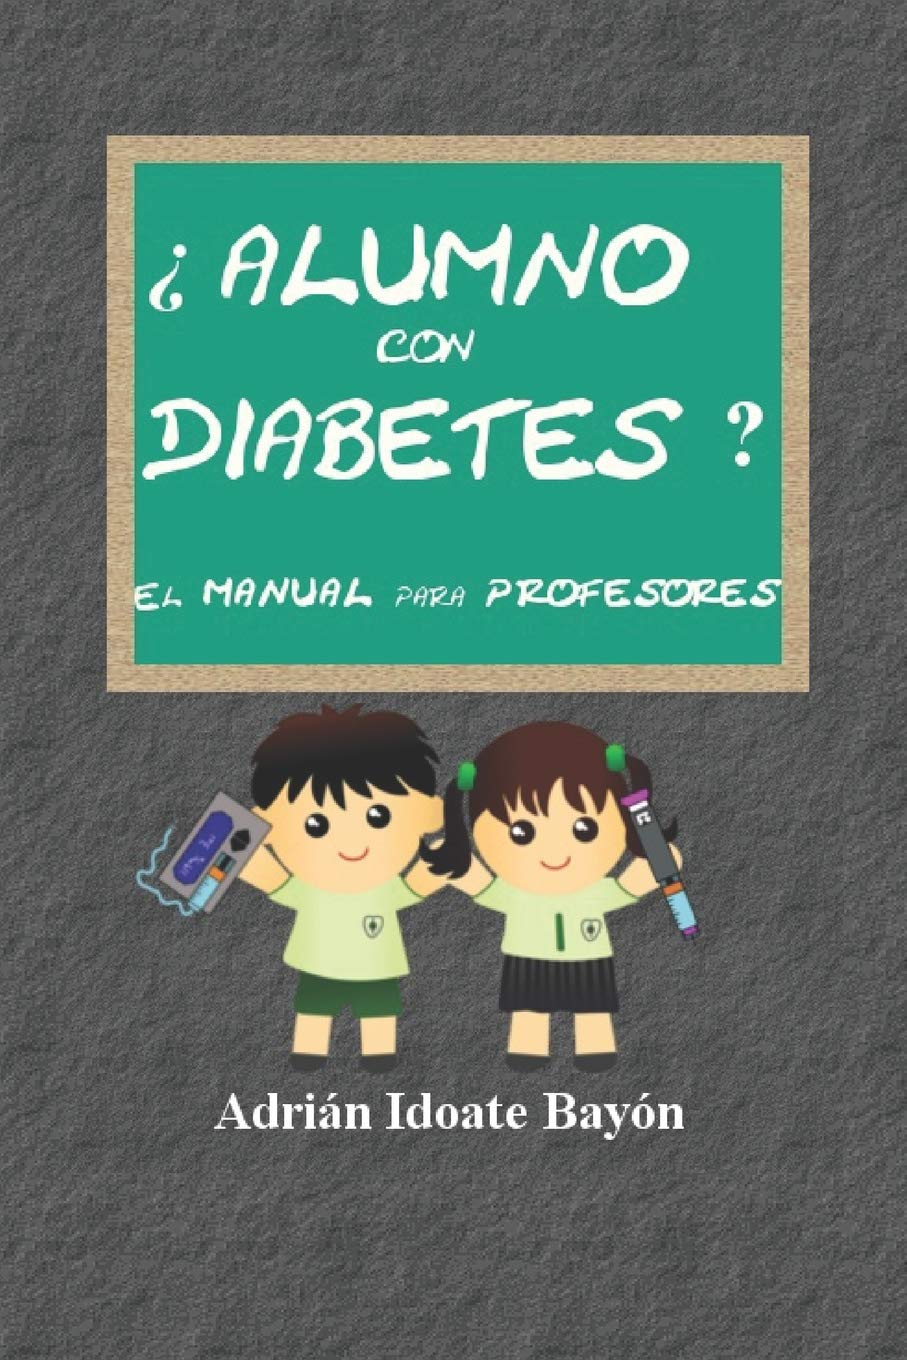 bullying de diabetes tipo 1 en las escuelas